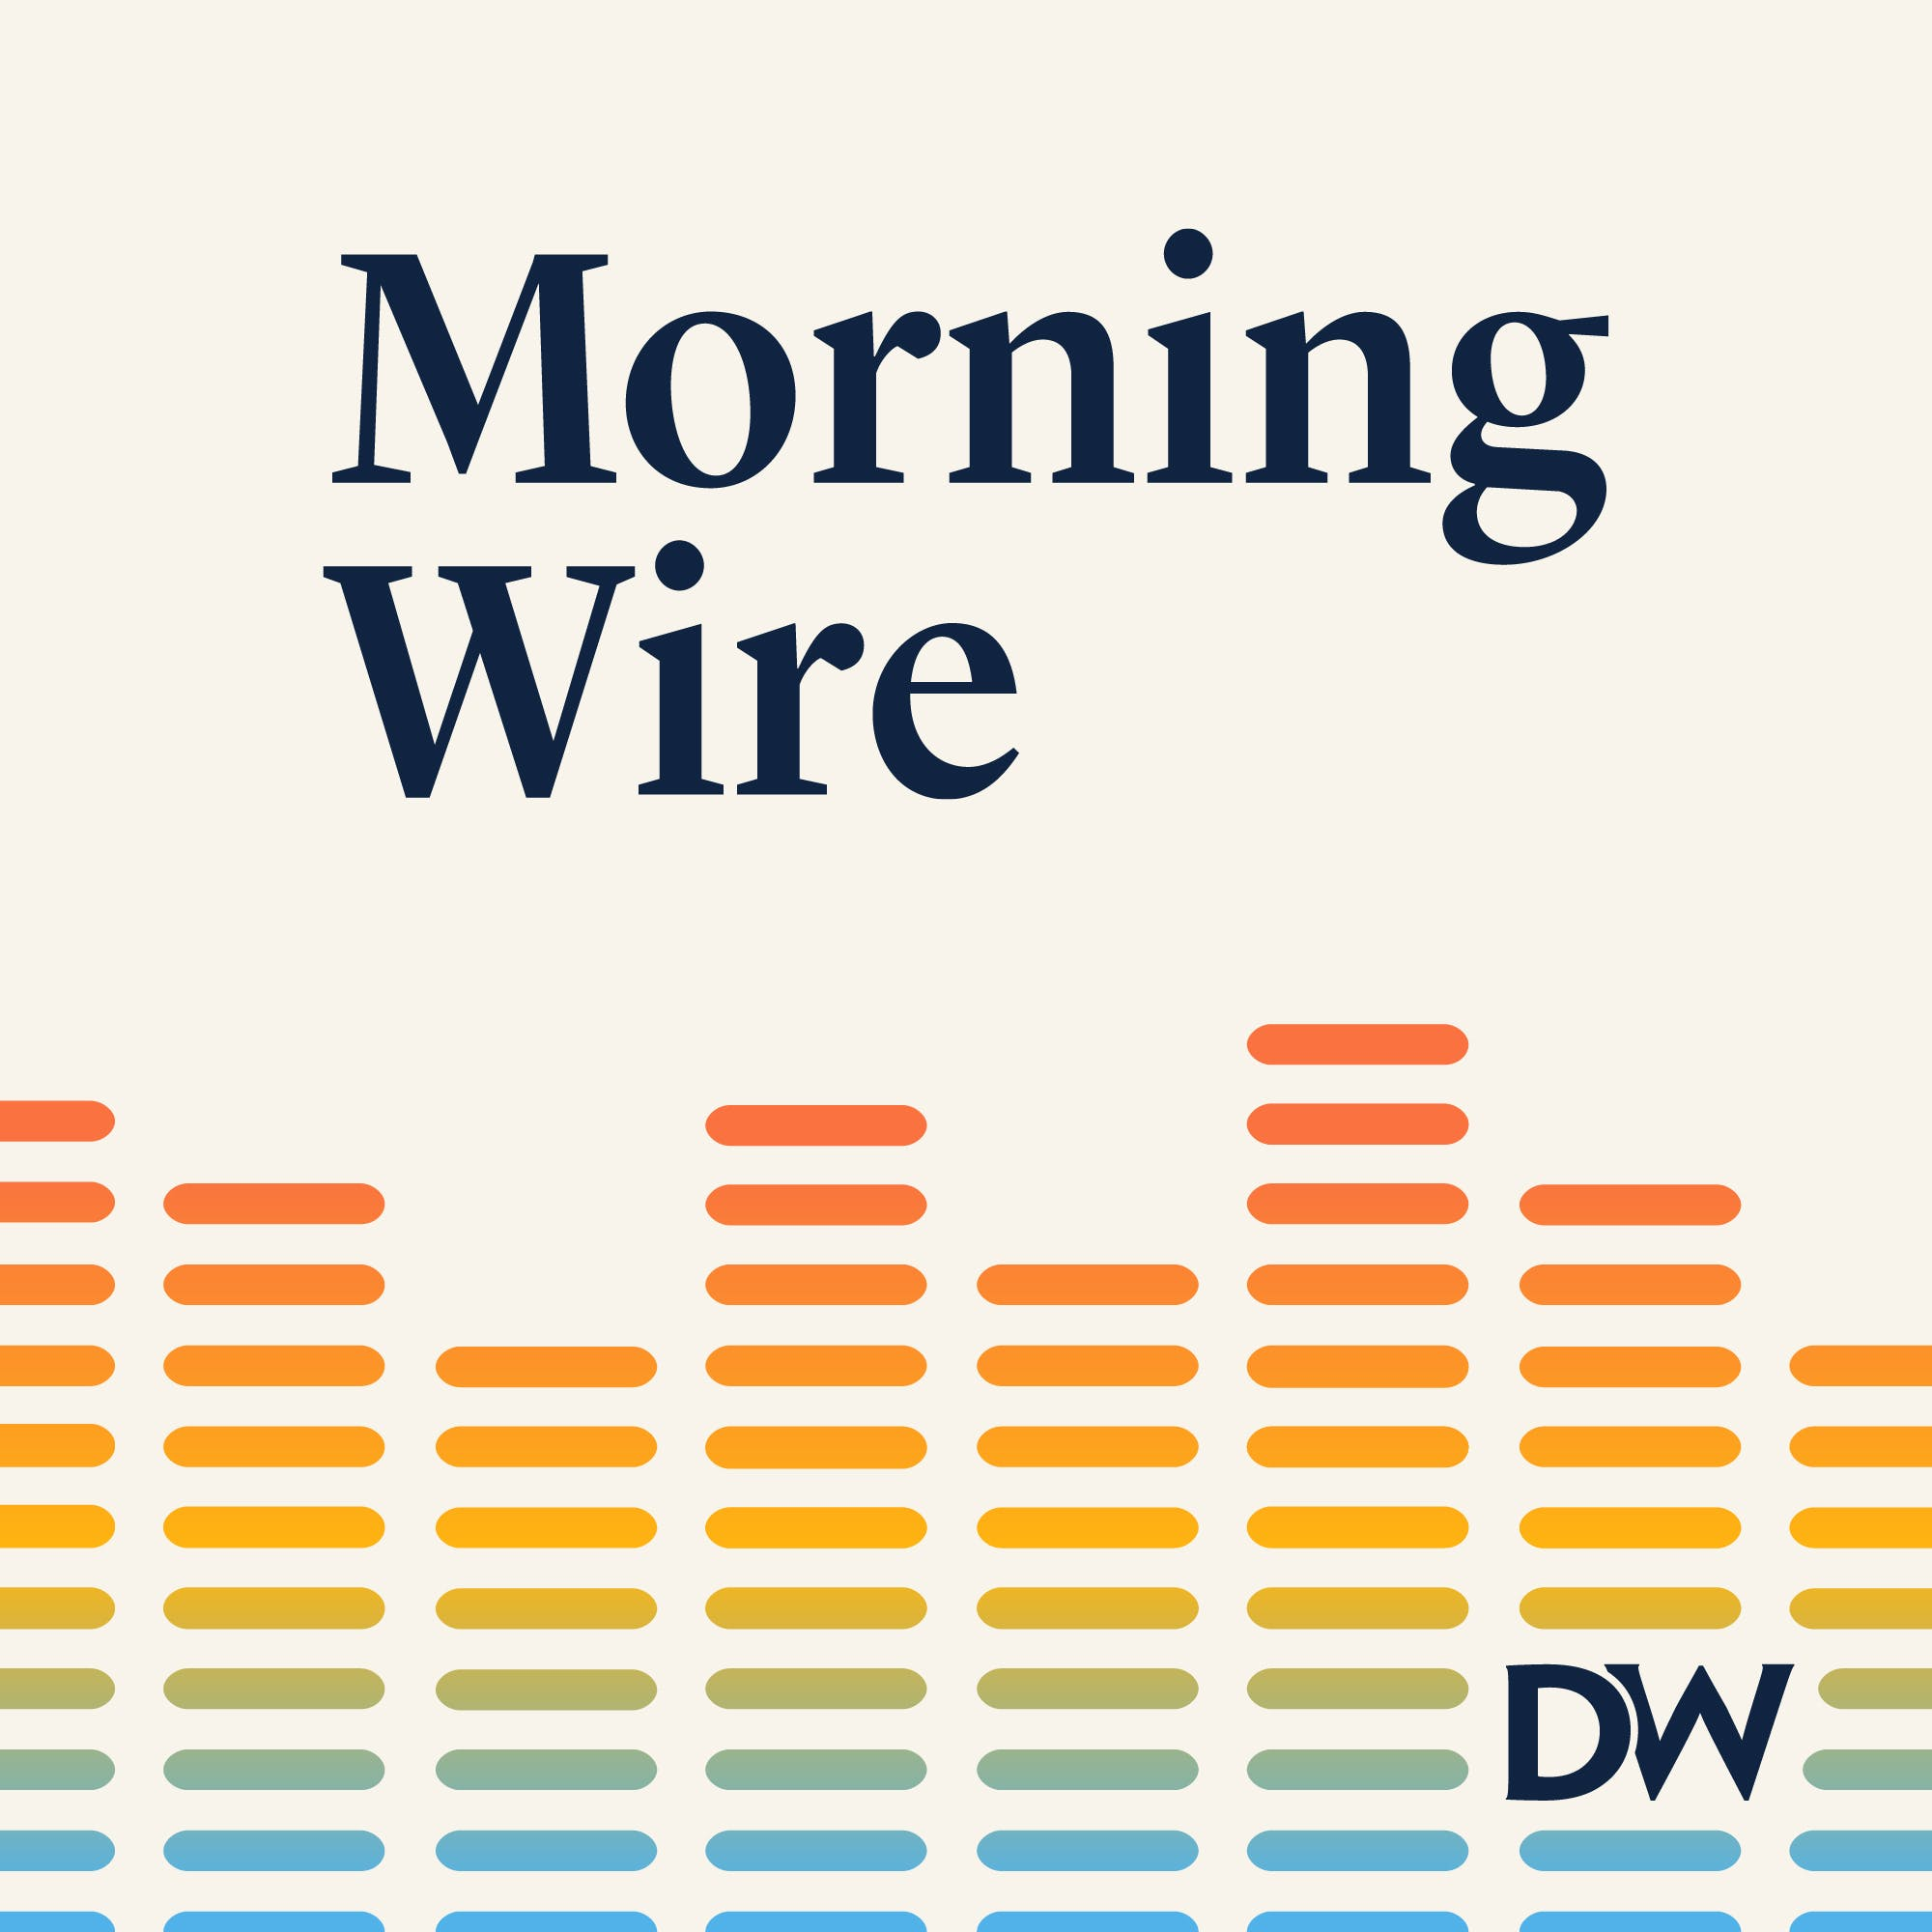 Morning Wire by The Daily Wire